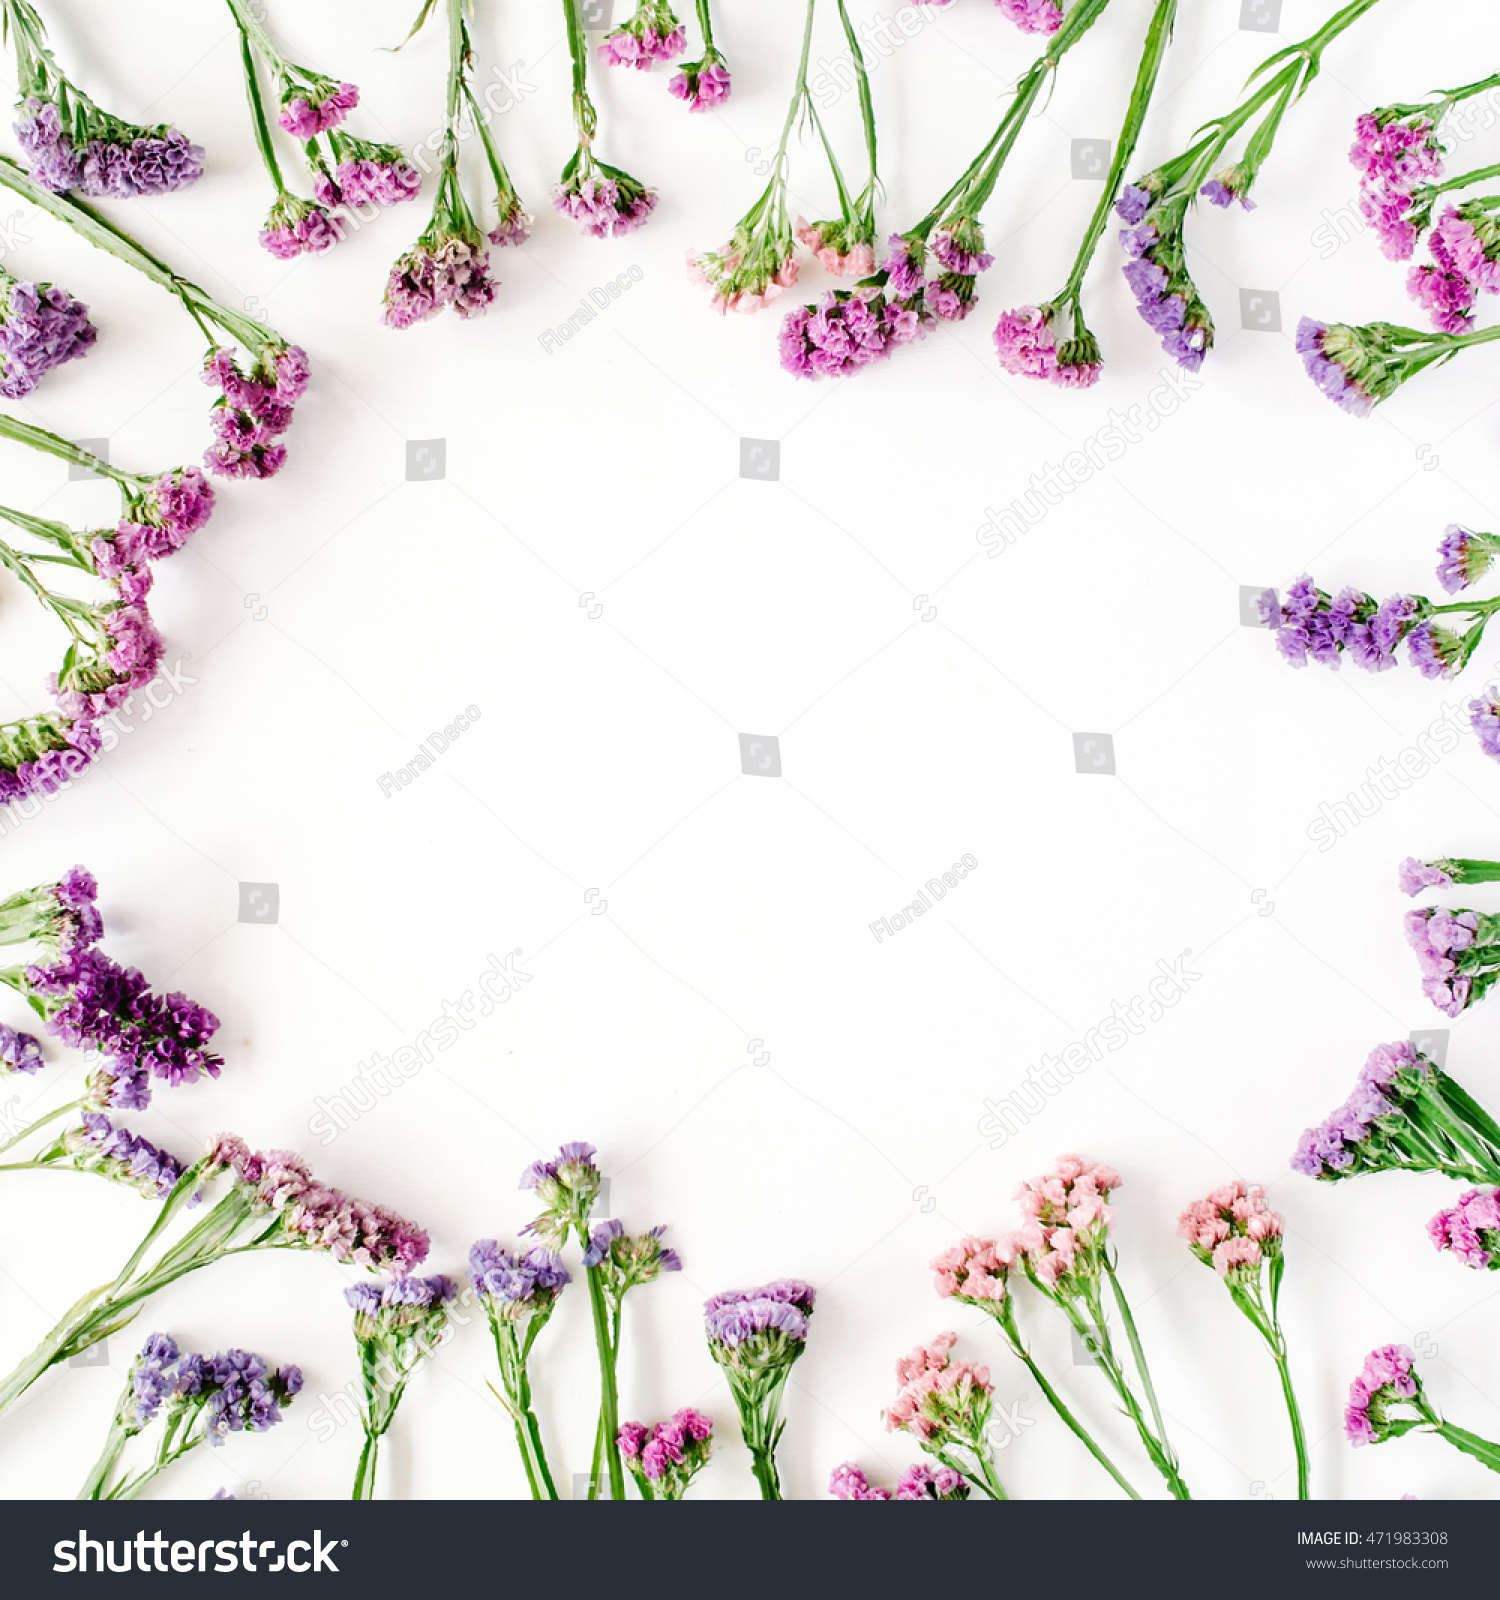 Frame With Dried Flowers On White Background Autumn Flat Lay